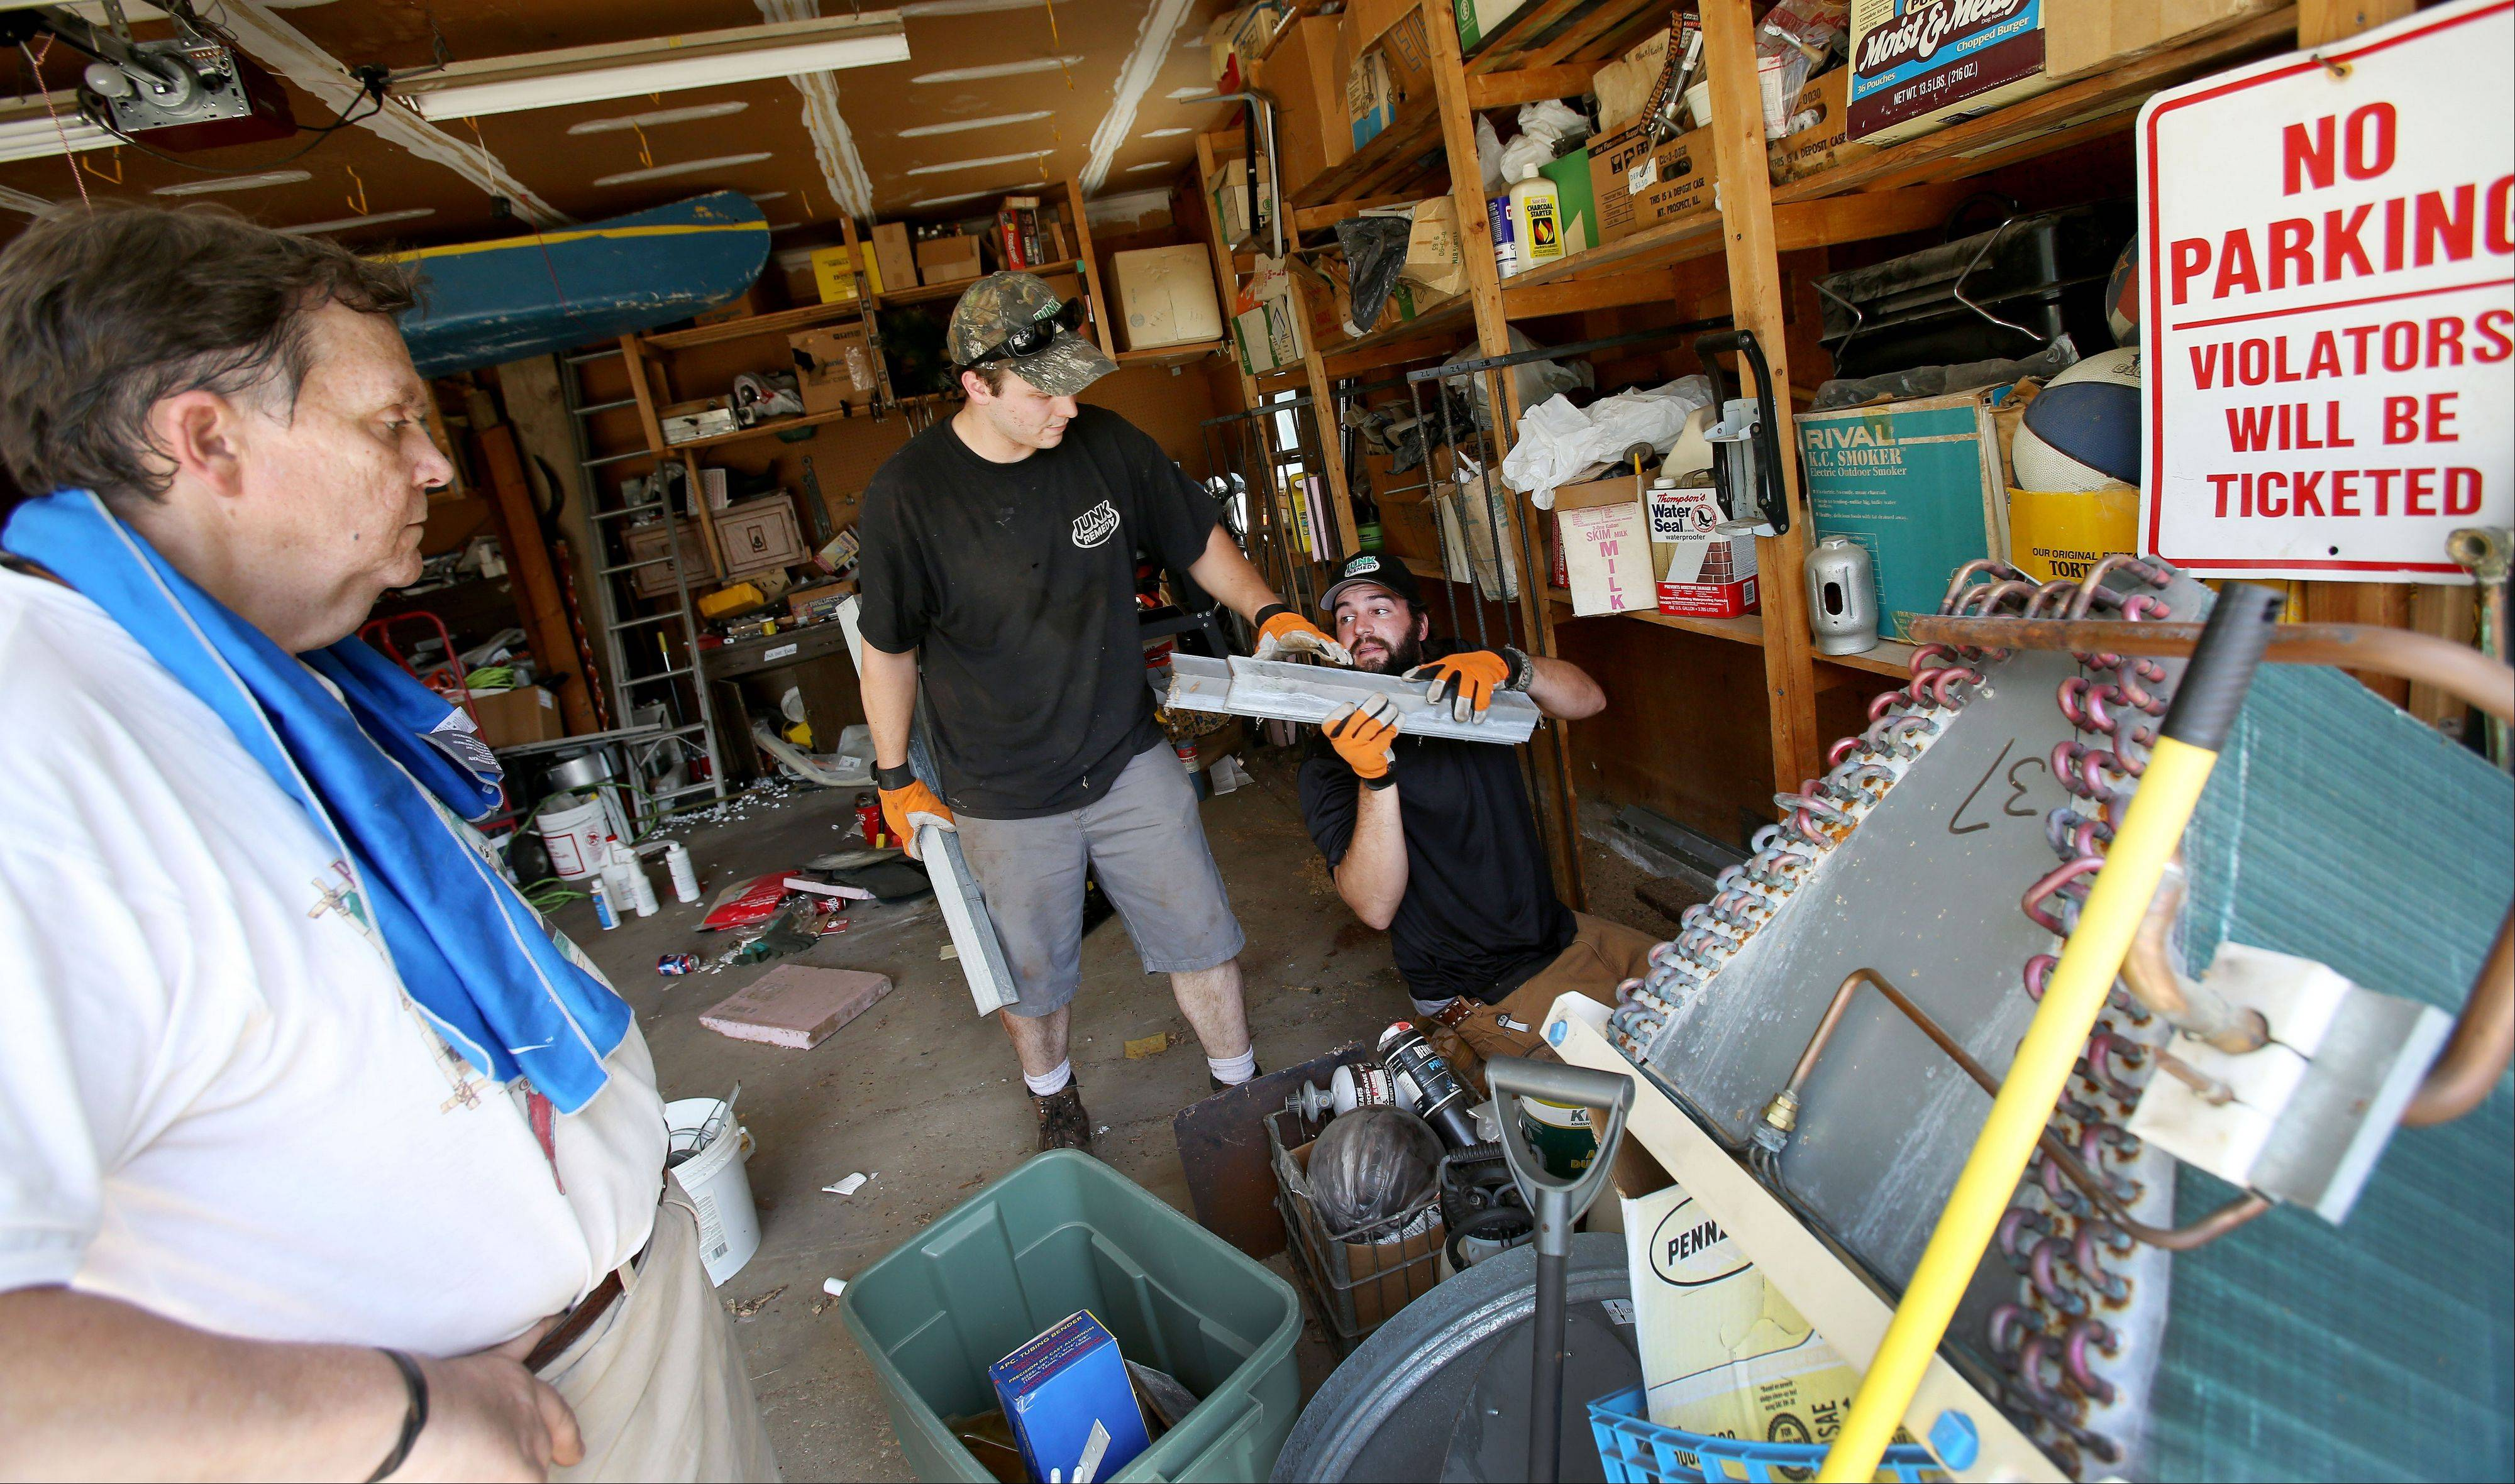 Keeping a watchful eye on the process, Bob DeBellis makes peace with the removal of his items from his garage in Roselle. Junk Remedy co-owner Nick De Giulio, kneeling, hands items to team member Derek Moser as part of the garage makeover.